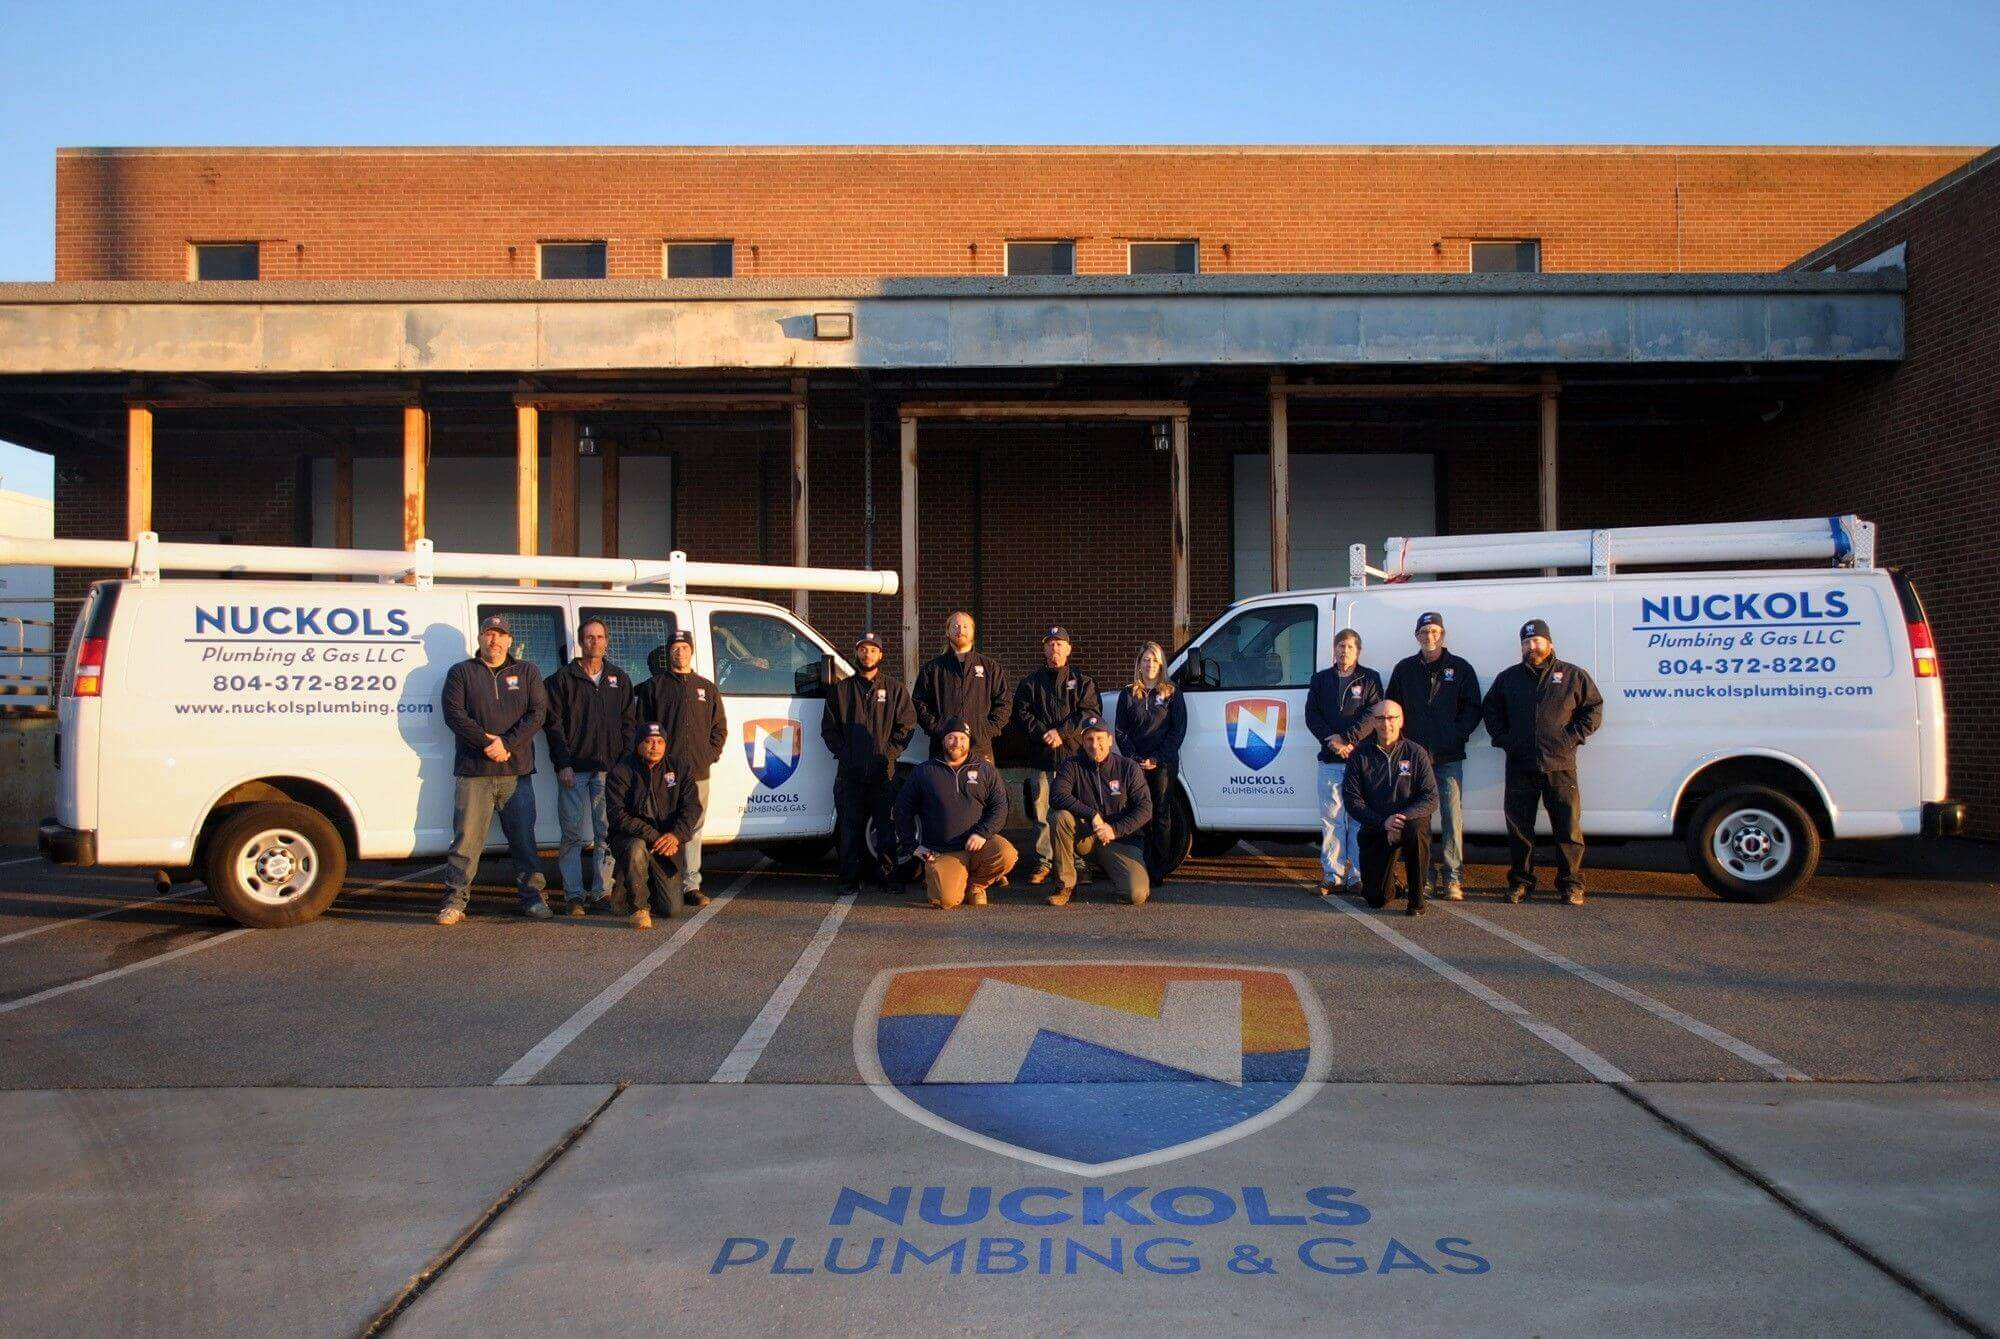 Nuckols Plumbing & Gas Team Photo